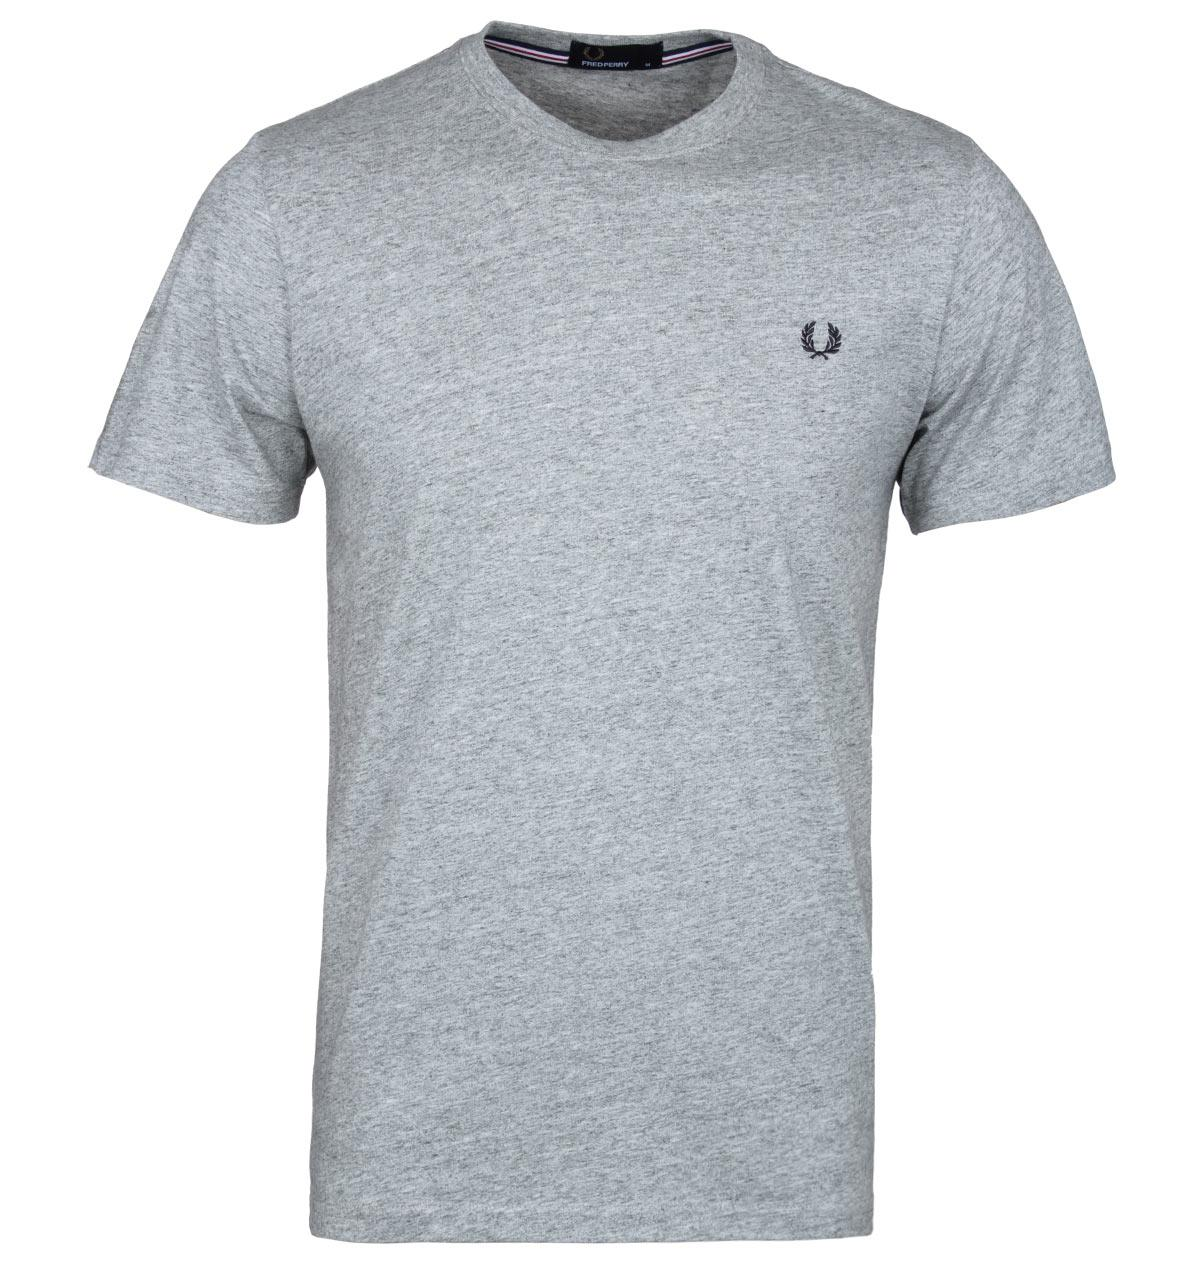 Lyst fred perry steel grey marl crew neck t shirt in for Grey marl t shirt